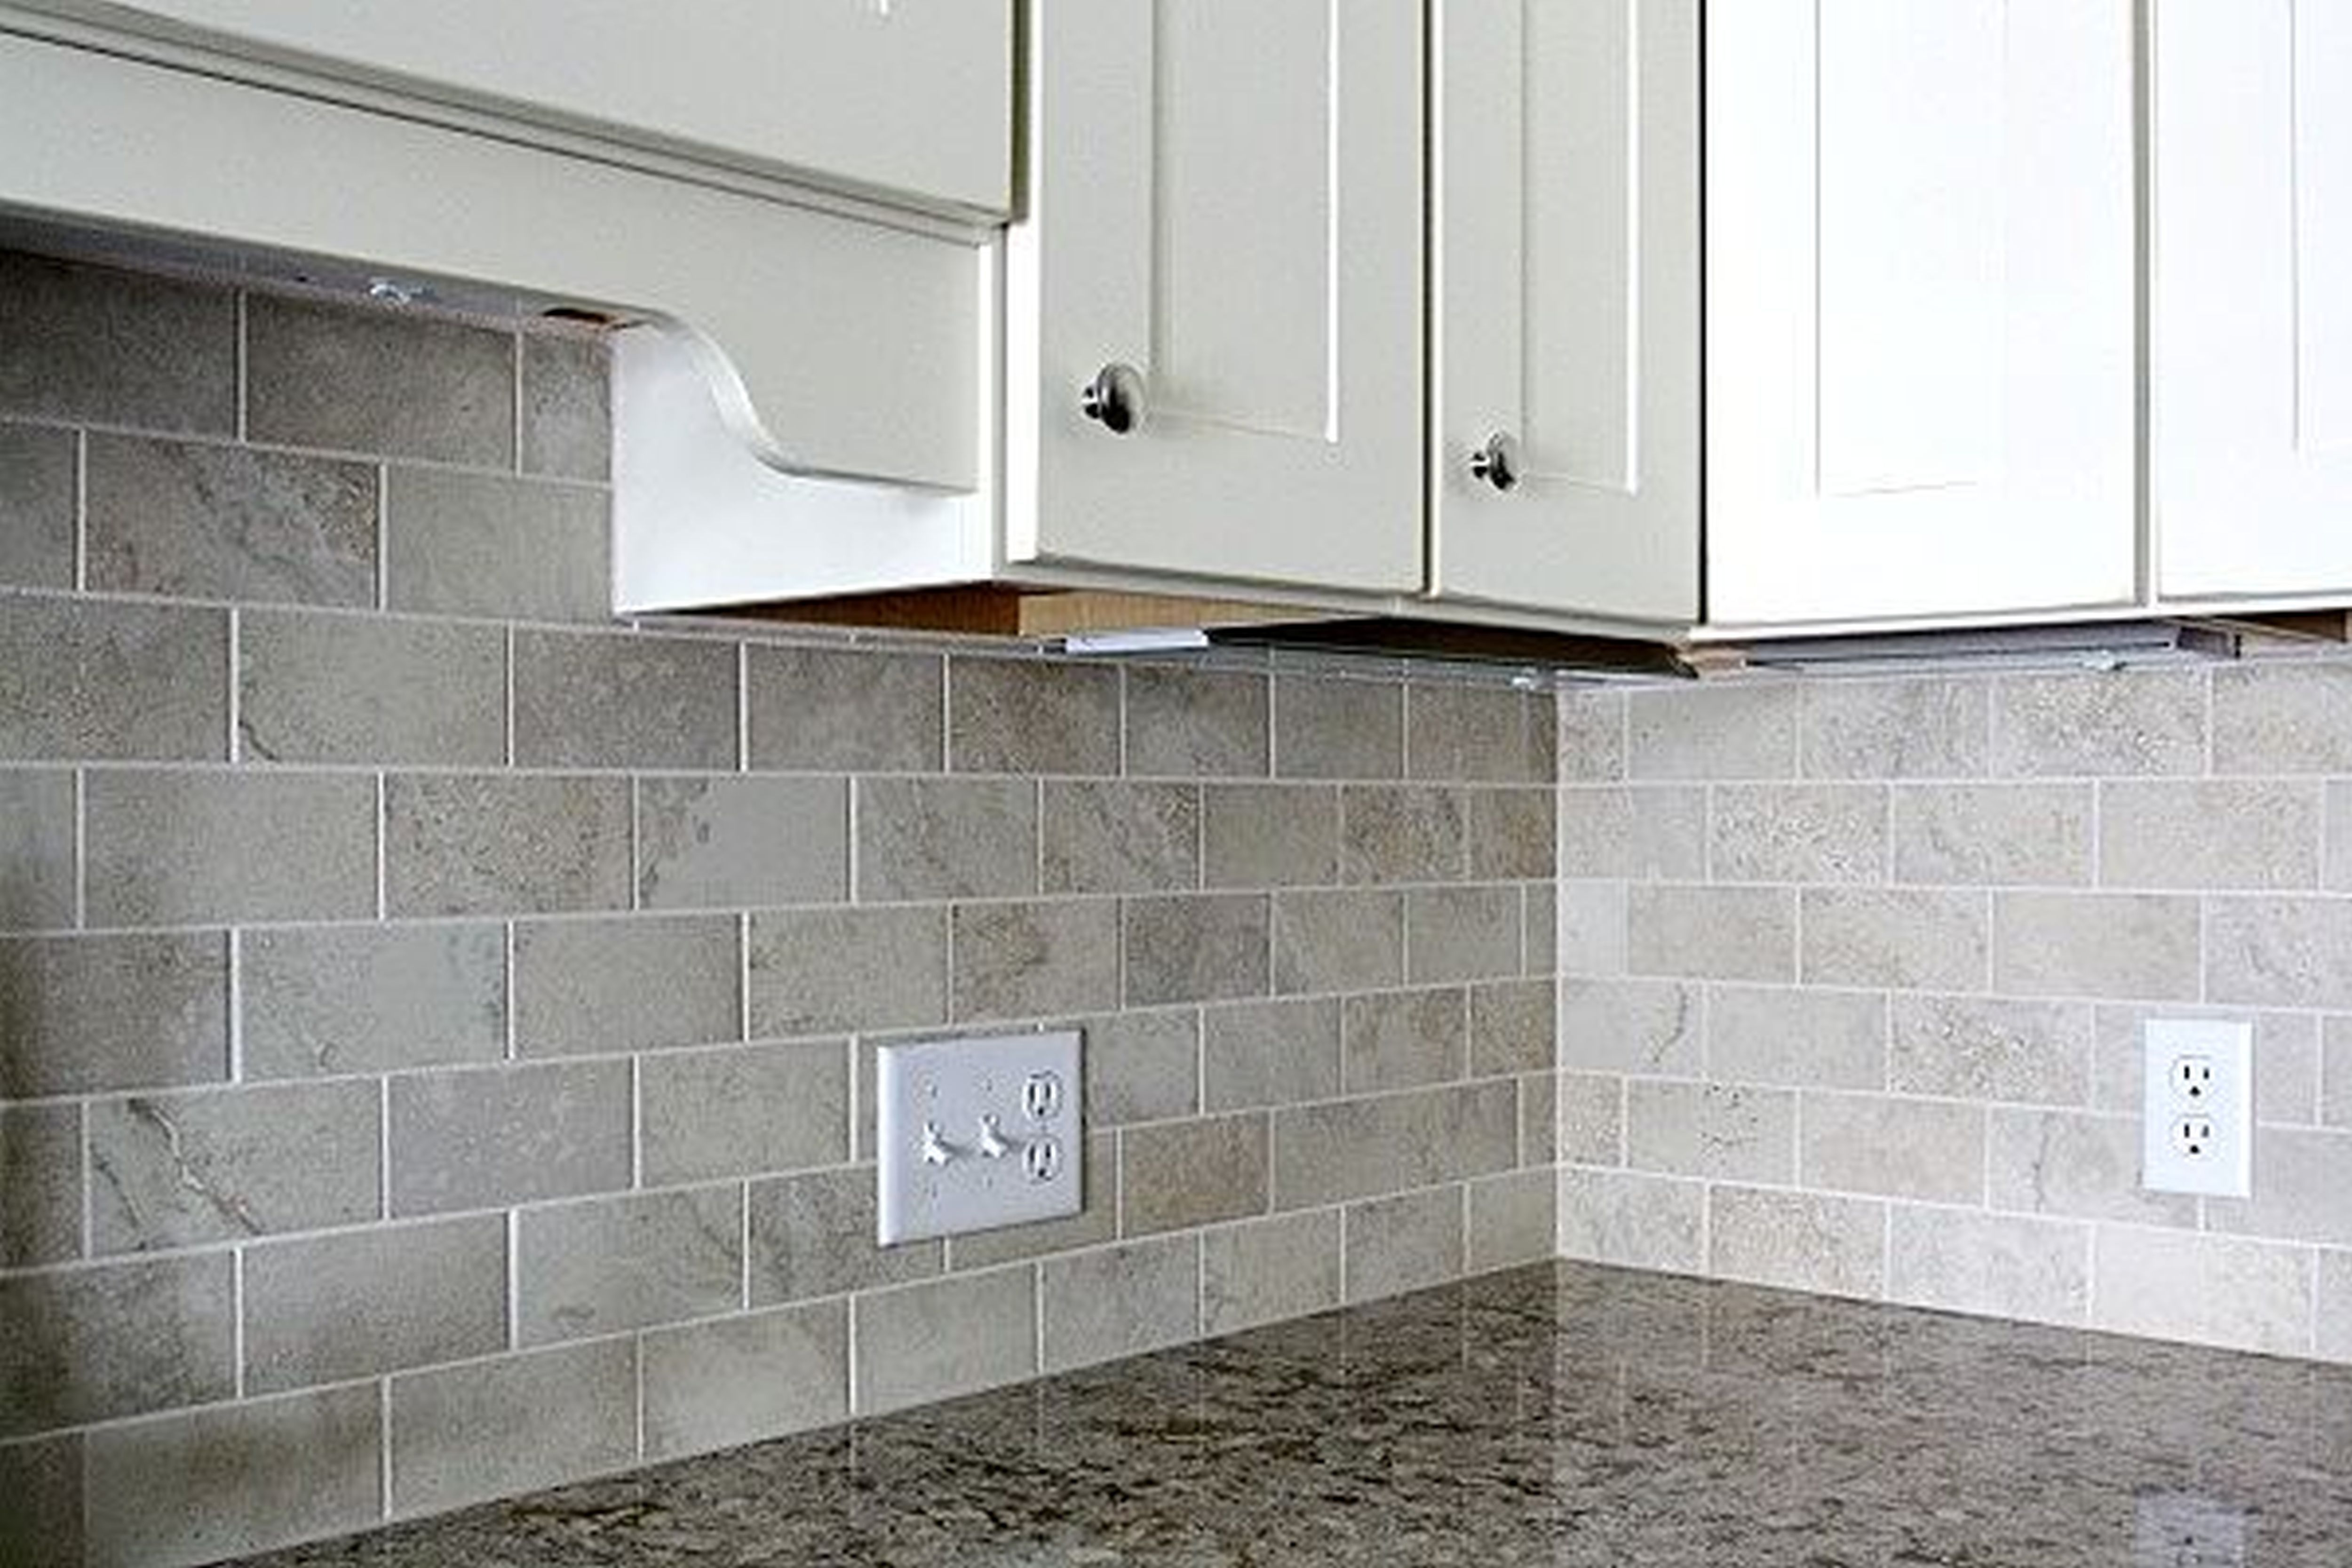 8 Home Depot Kitchen Backsplash Installation Collections Kitchen Backsplash Lowes Stone Tiles Kitchen Kitchen Tiles Backsplash